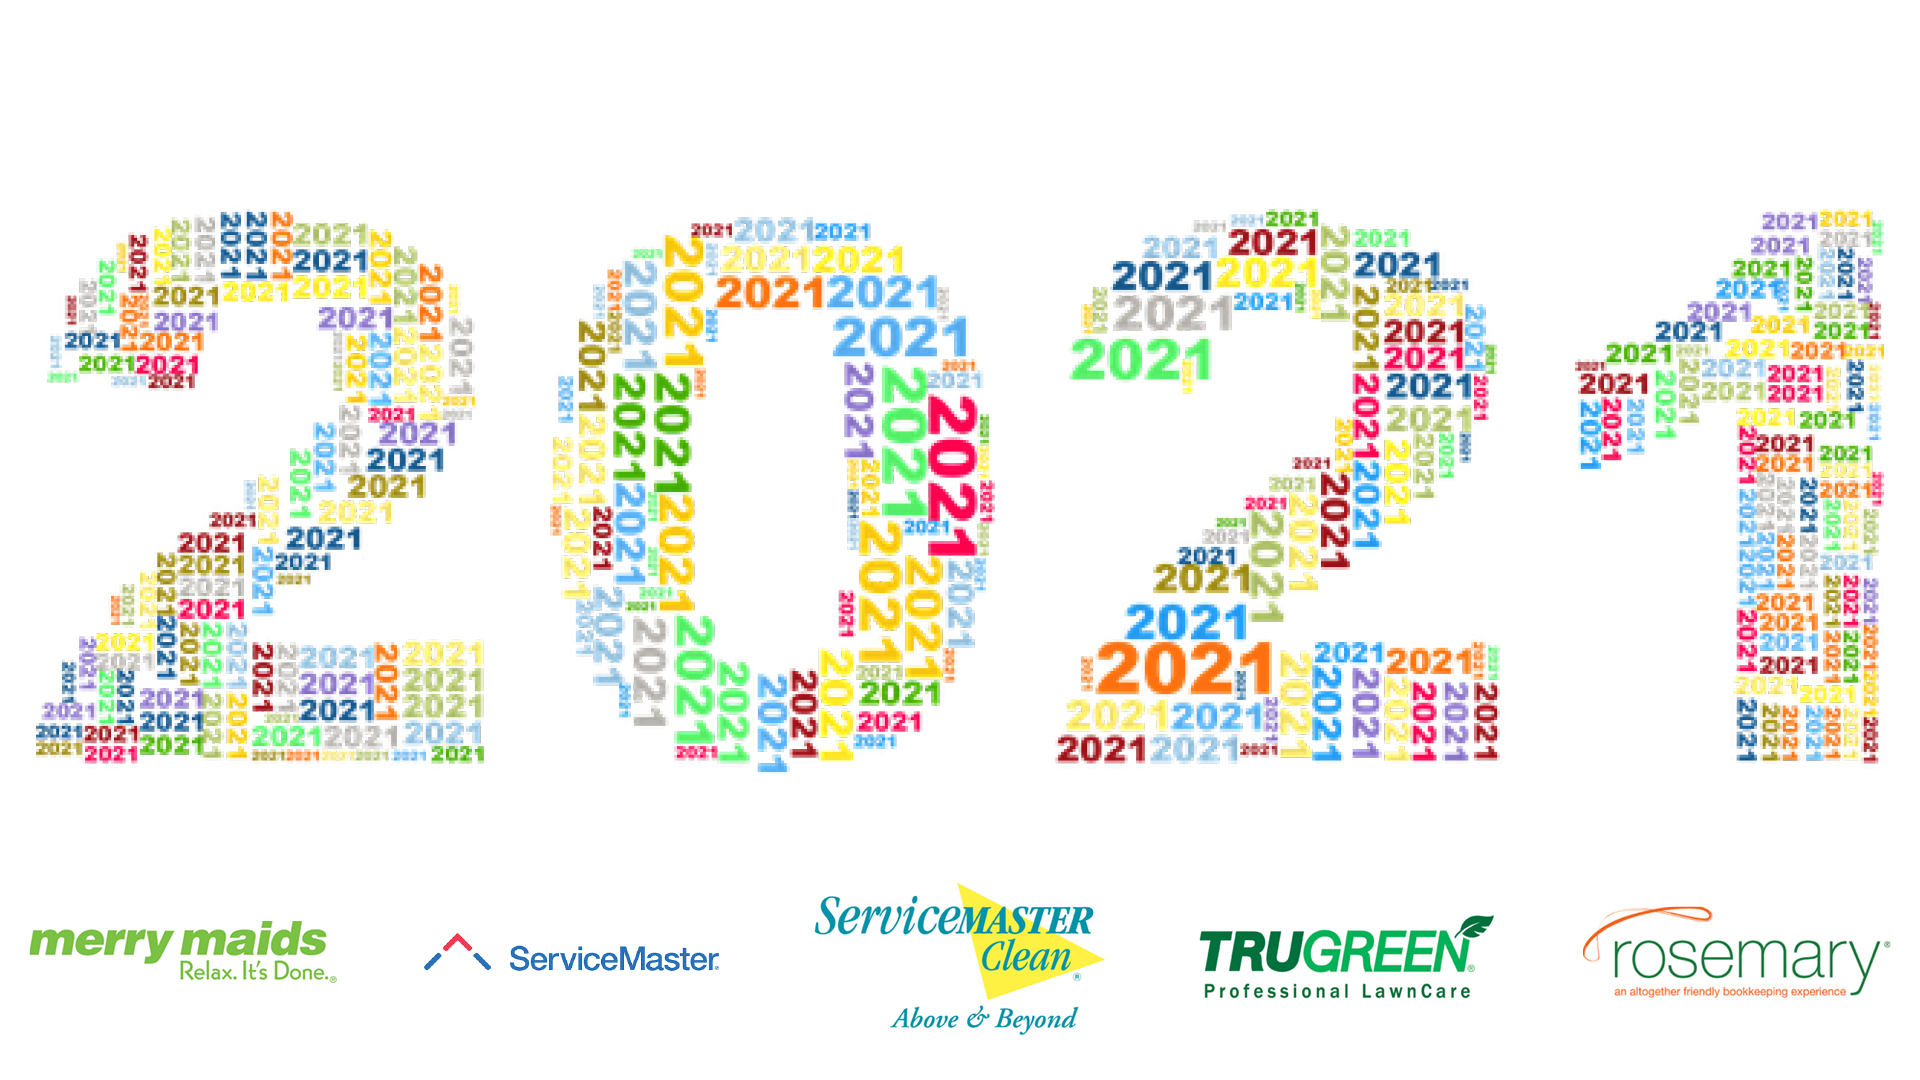 2021 – What does it mean for the ServiceMaster group?